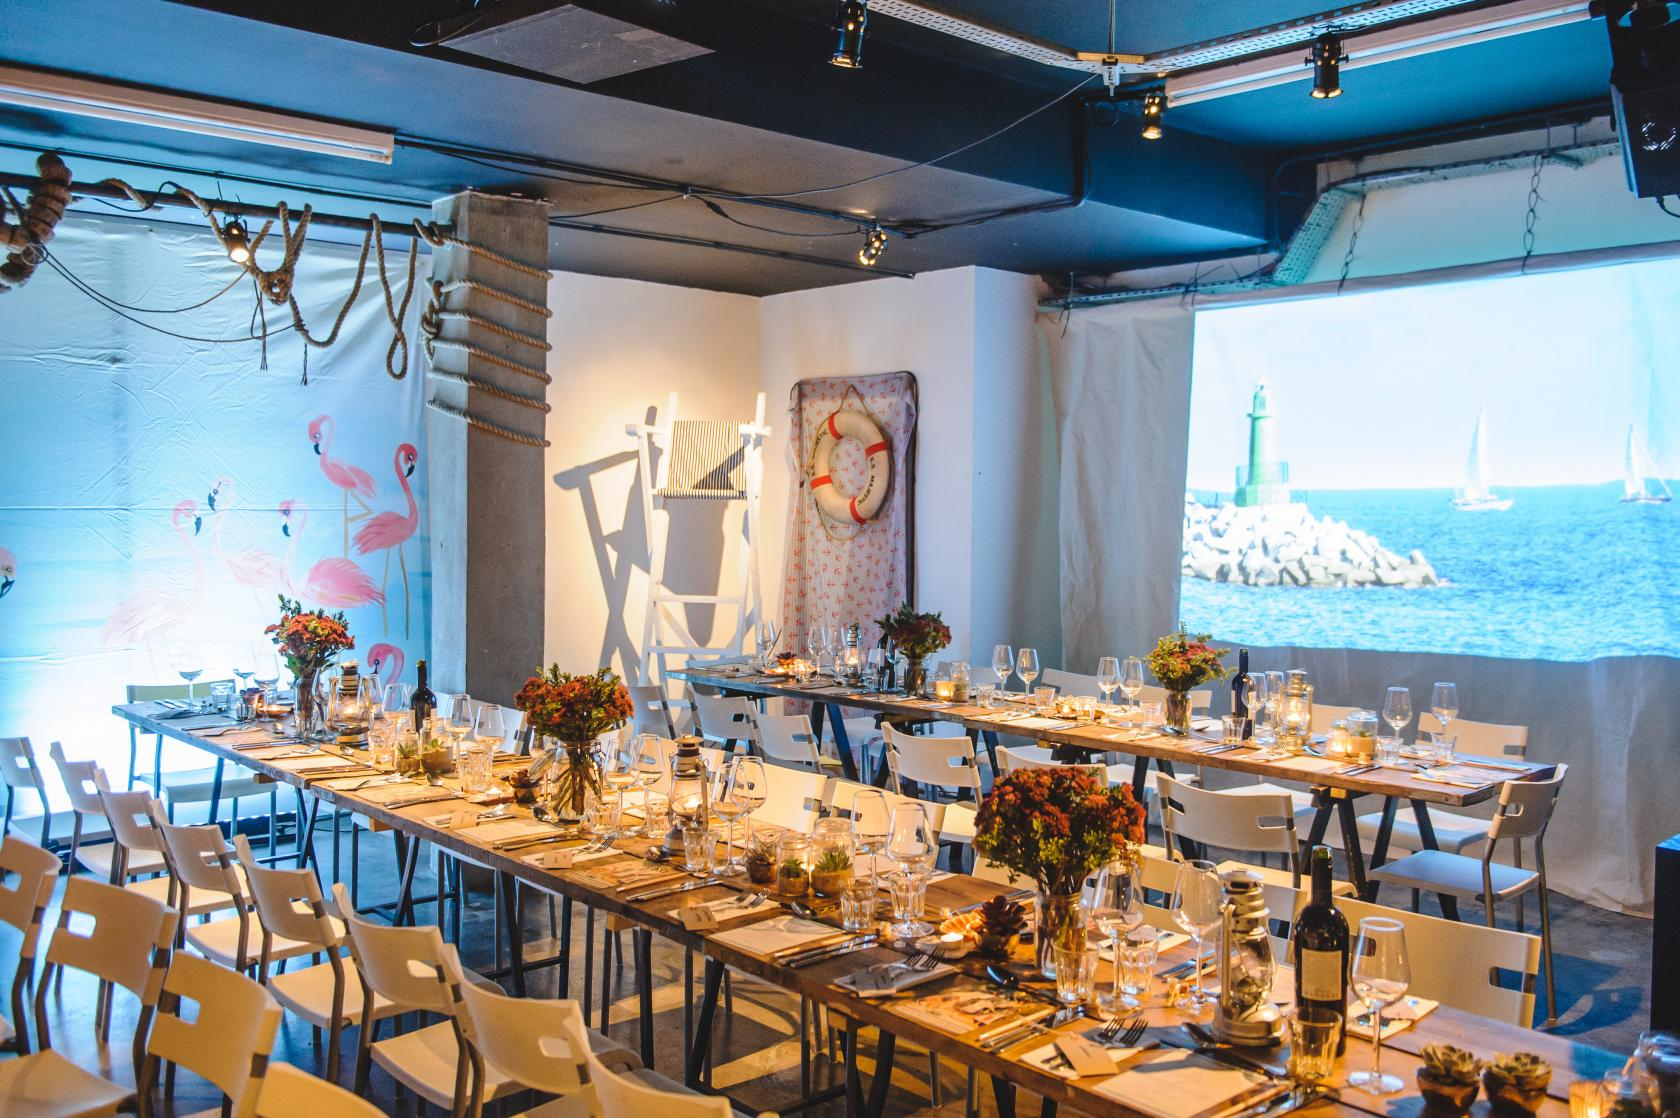 Kitted out with a professional kitchen, pop-up bar and flexible lighting rig, there's no better place than Carousel for your next supper club.